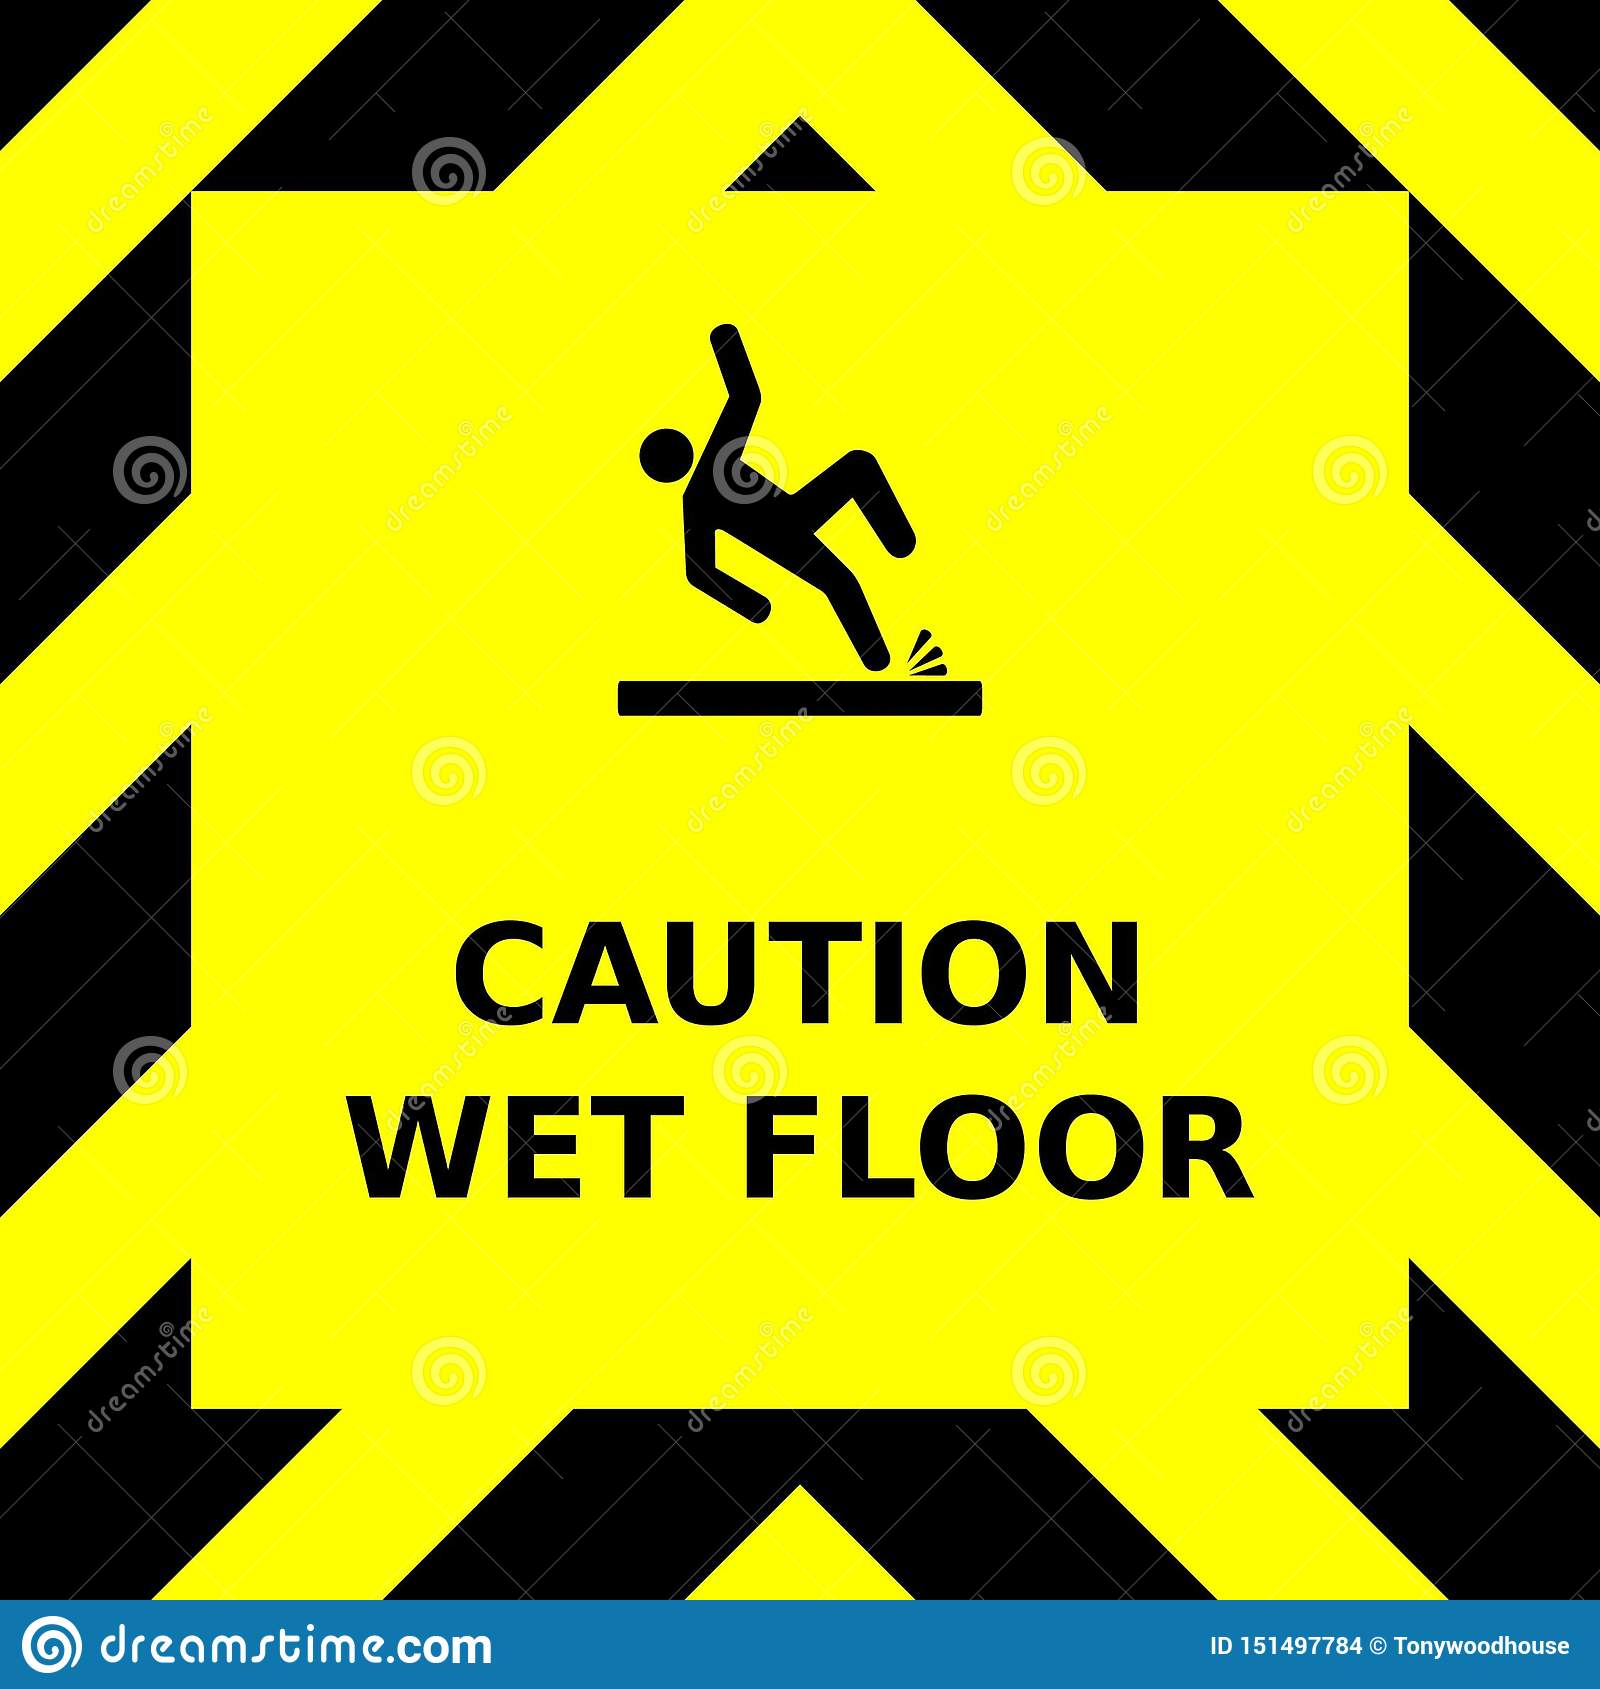 Seamless vector graphic of black upward pointing chevrons on a yellow background with the wording Caution High Voltage